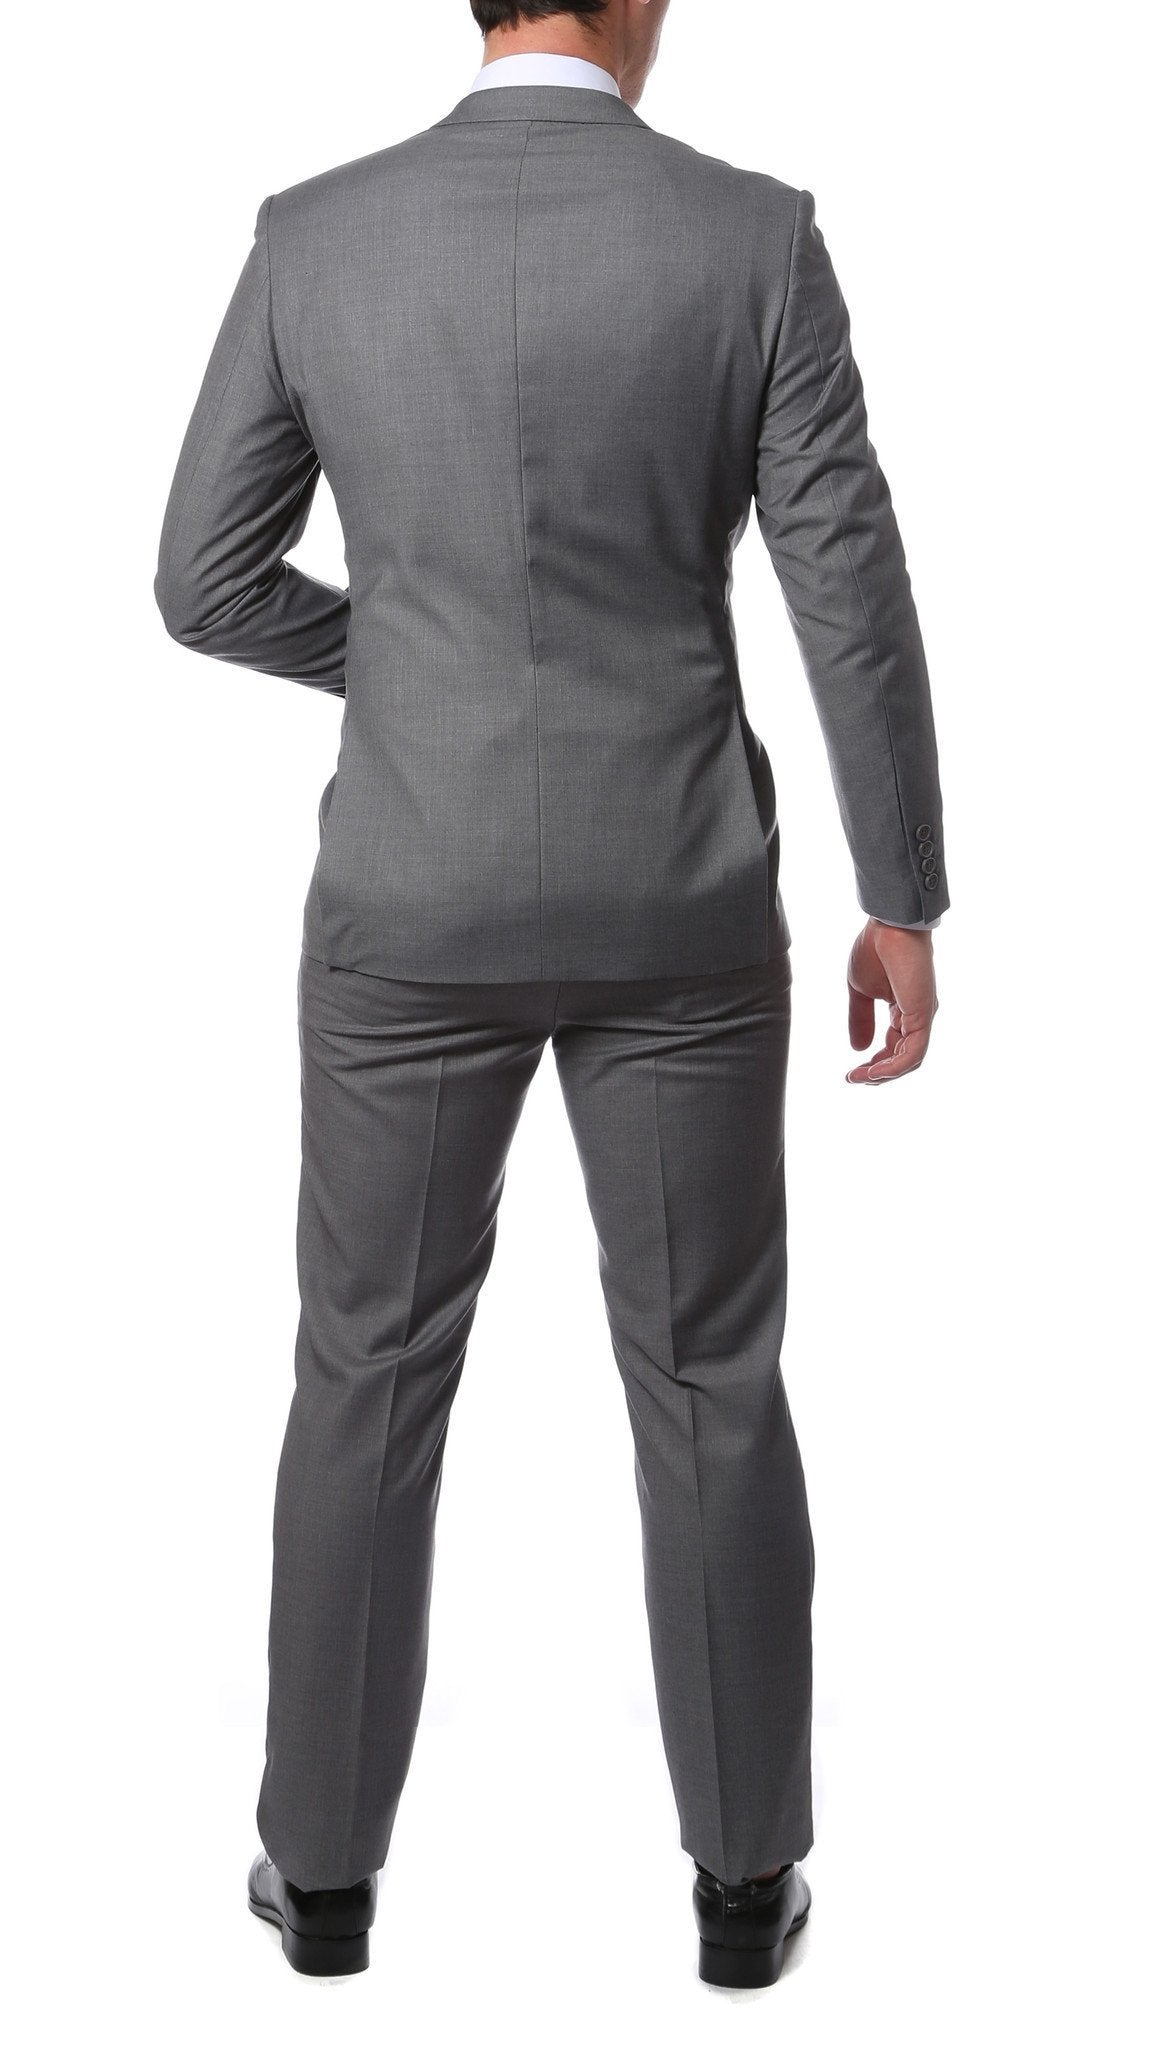 Etro Light Grey Slim Fit Modern Men's 2 pc Suit - Giorgio's Menswear